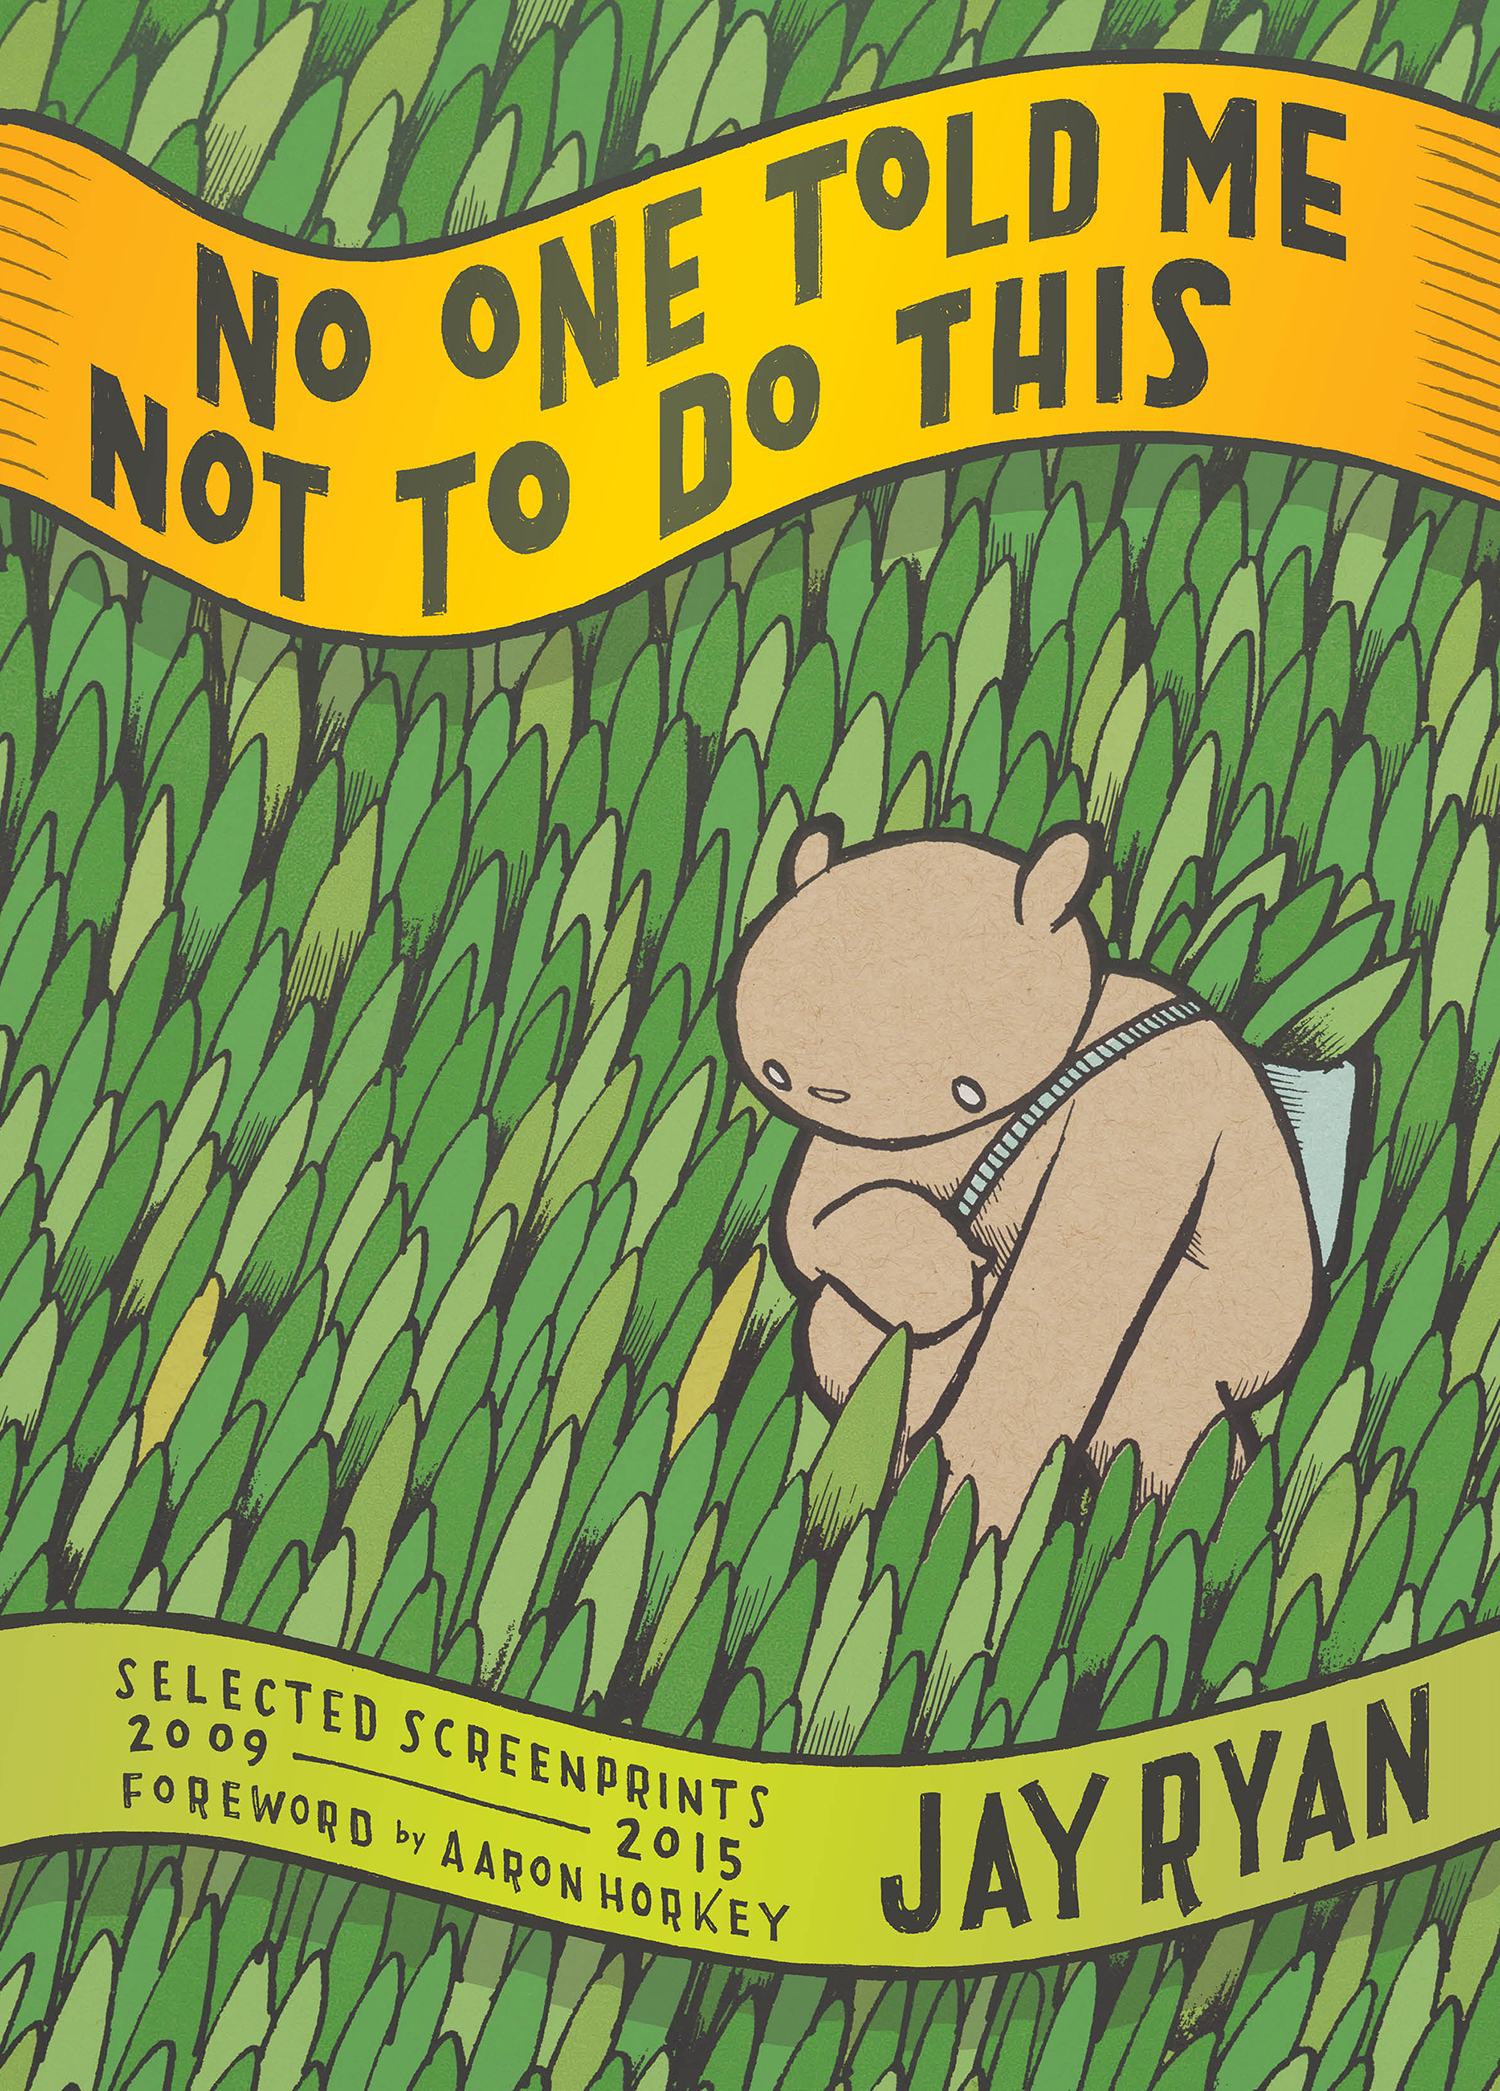 No One Told Me Not To Do This, eBook cover